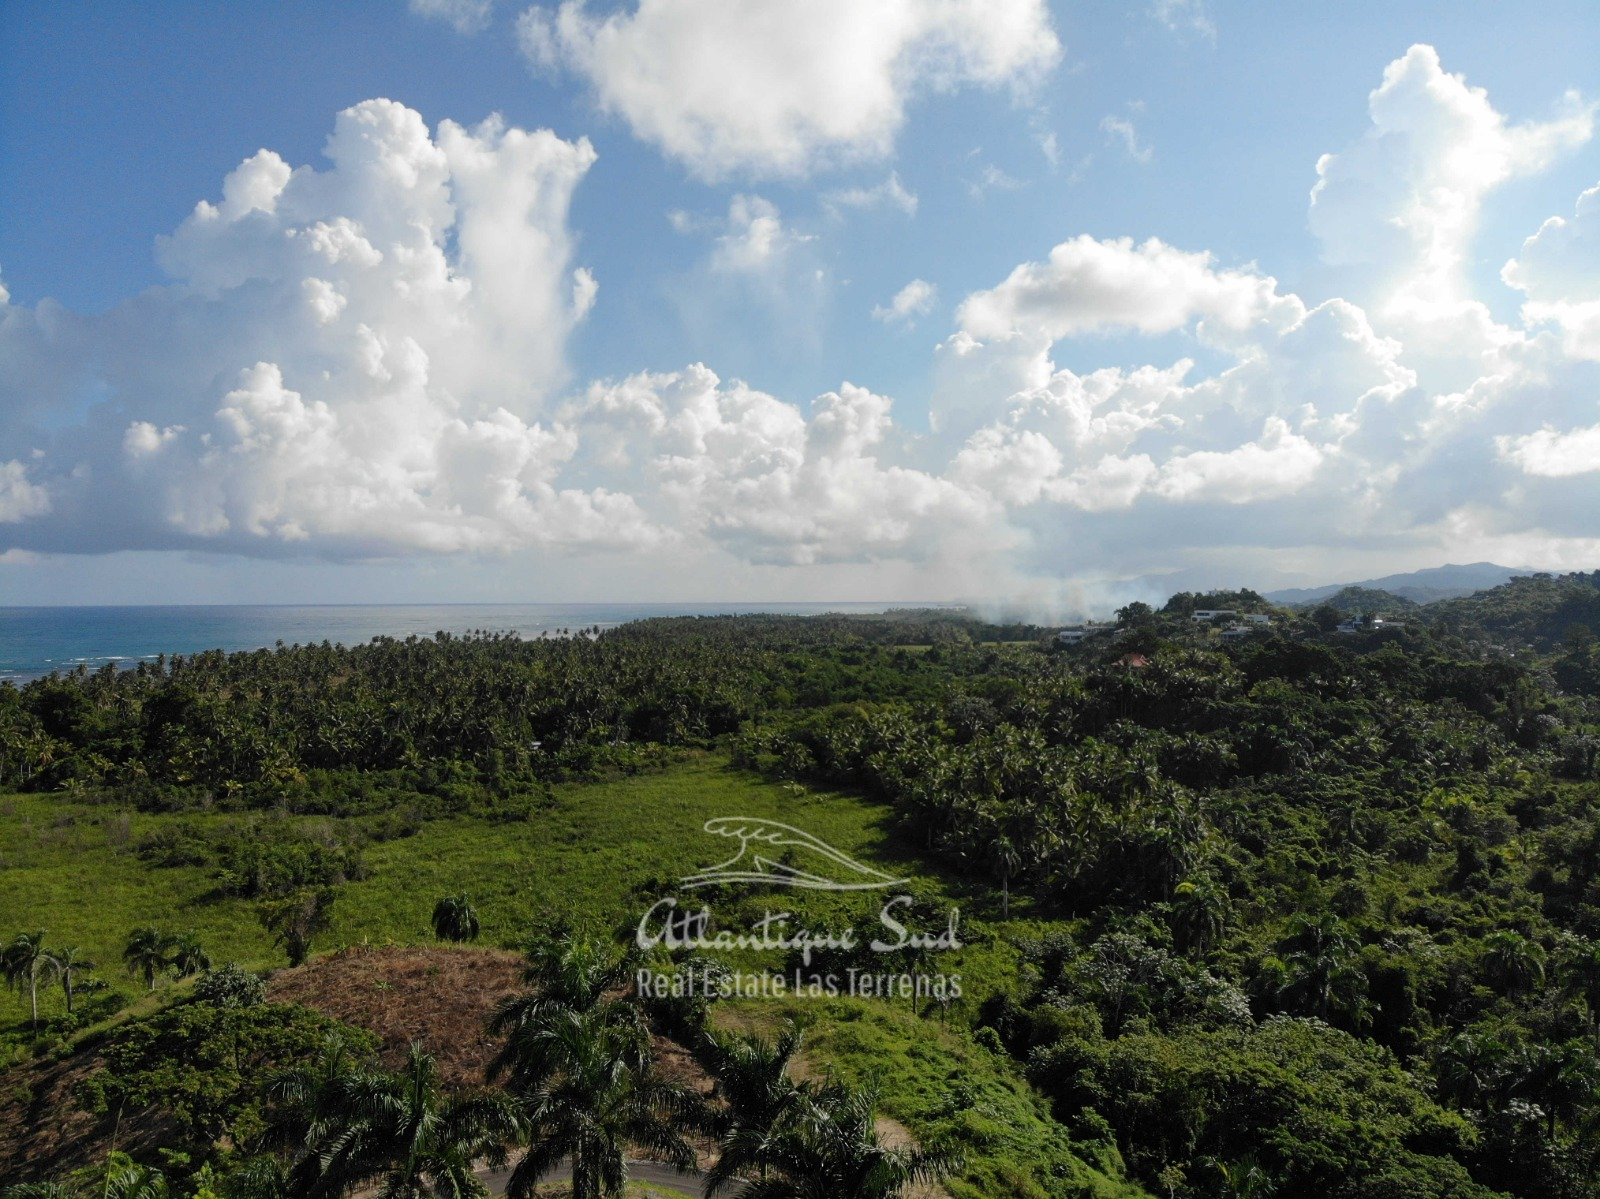 Land Lots for sale las terrenas samana20.jpeg